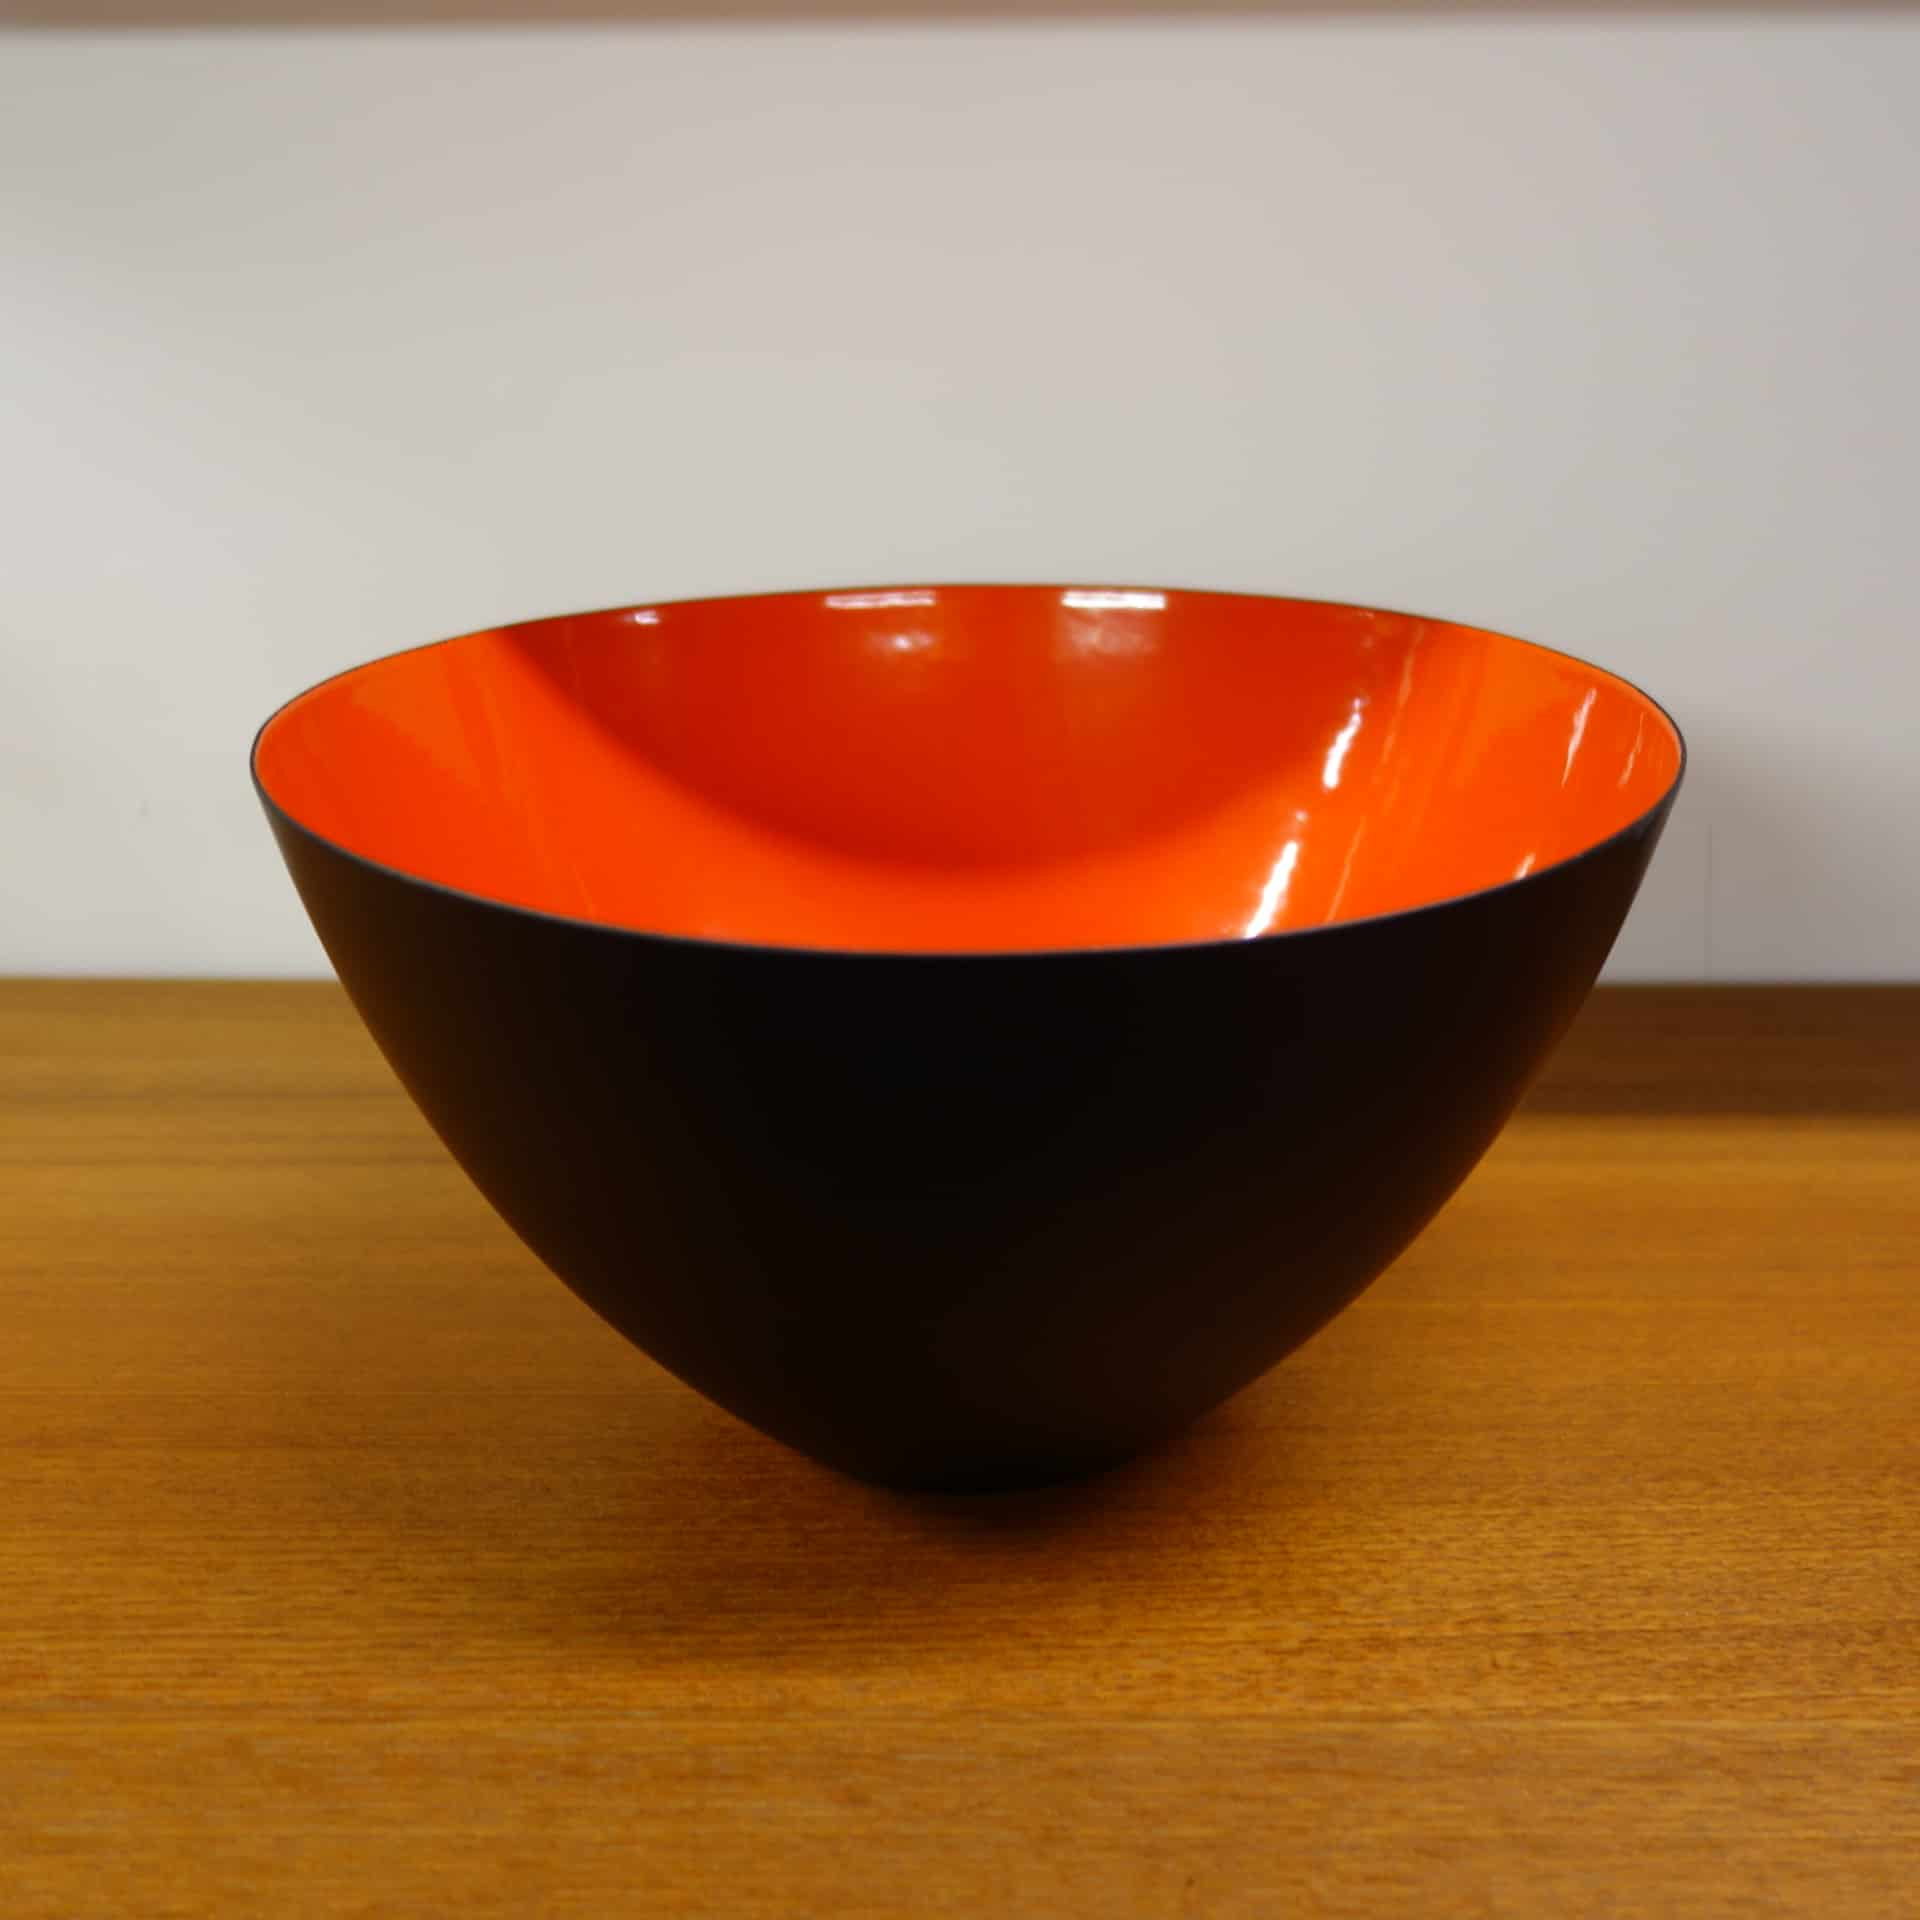 Red Krenit bowl by Herbert Krenchel